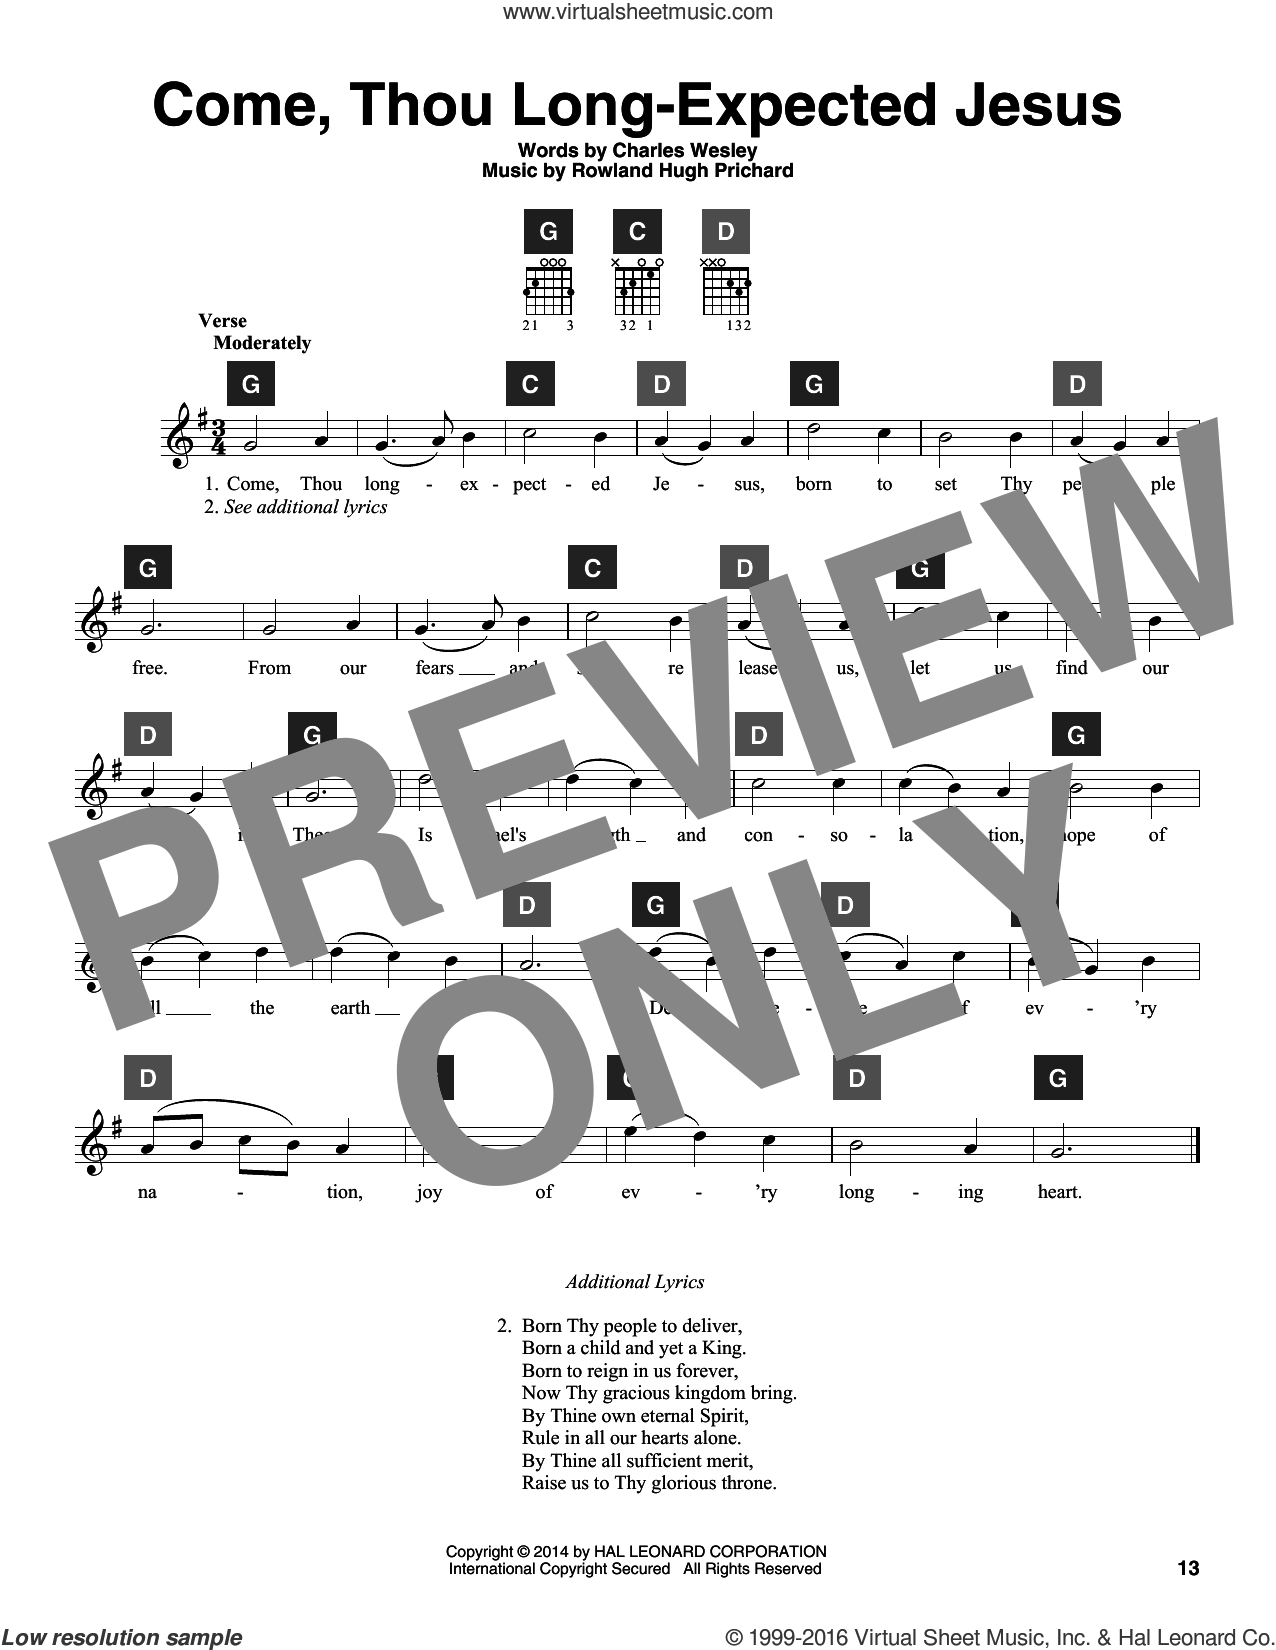 Come, Thou Long-Expected Jesus sheet music for guitar solo (ChordBuddy system) by Charles Wesley, Travis Perry and Rowland Prichard, intermediate guitar (ChordBuddy system). Score Image Preview.